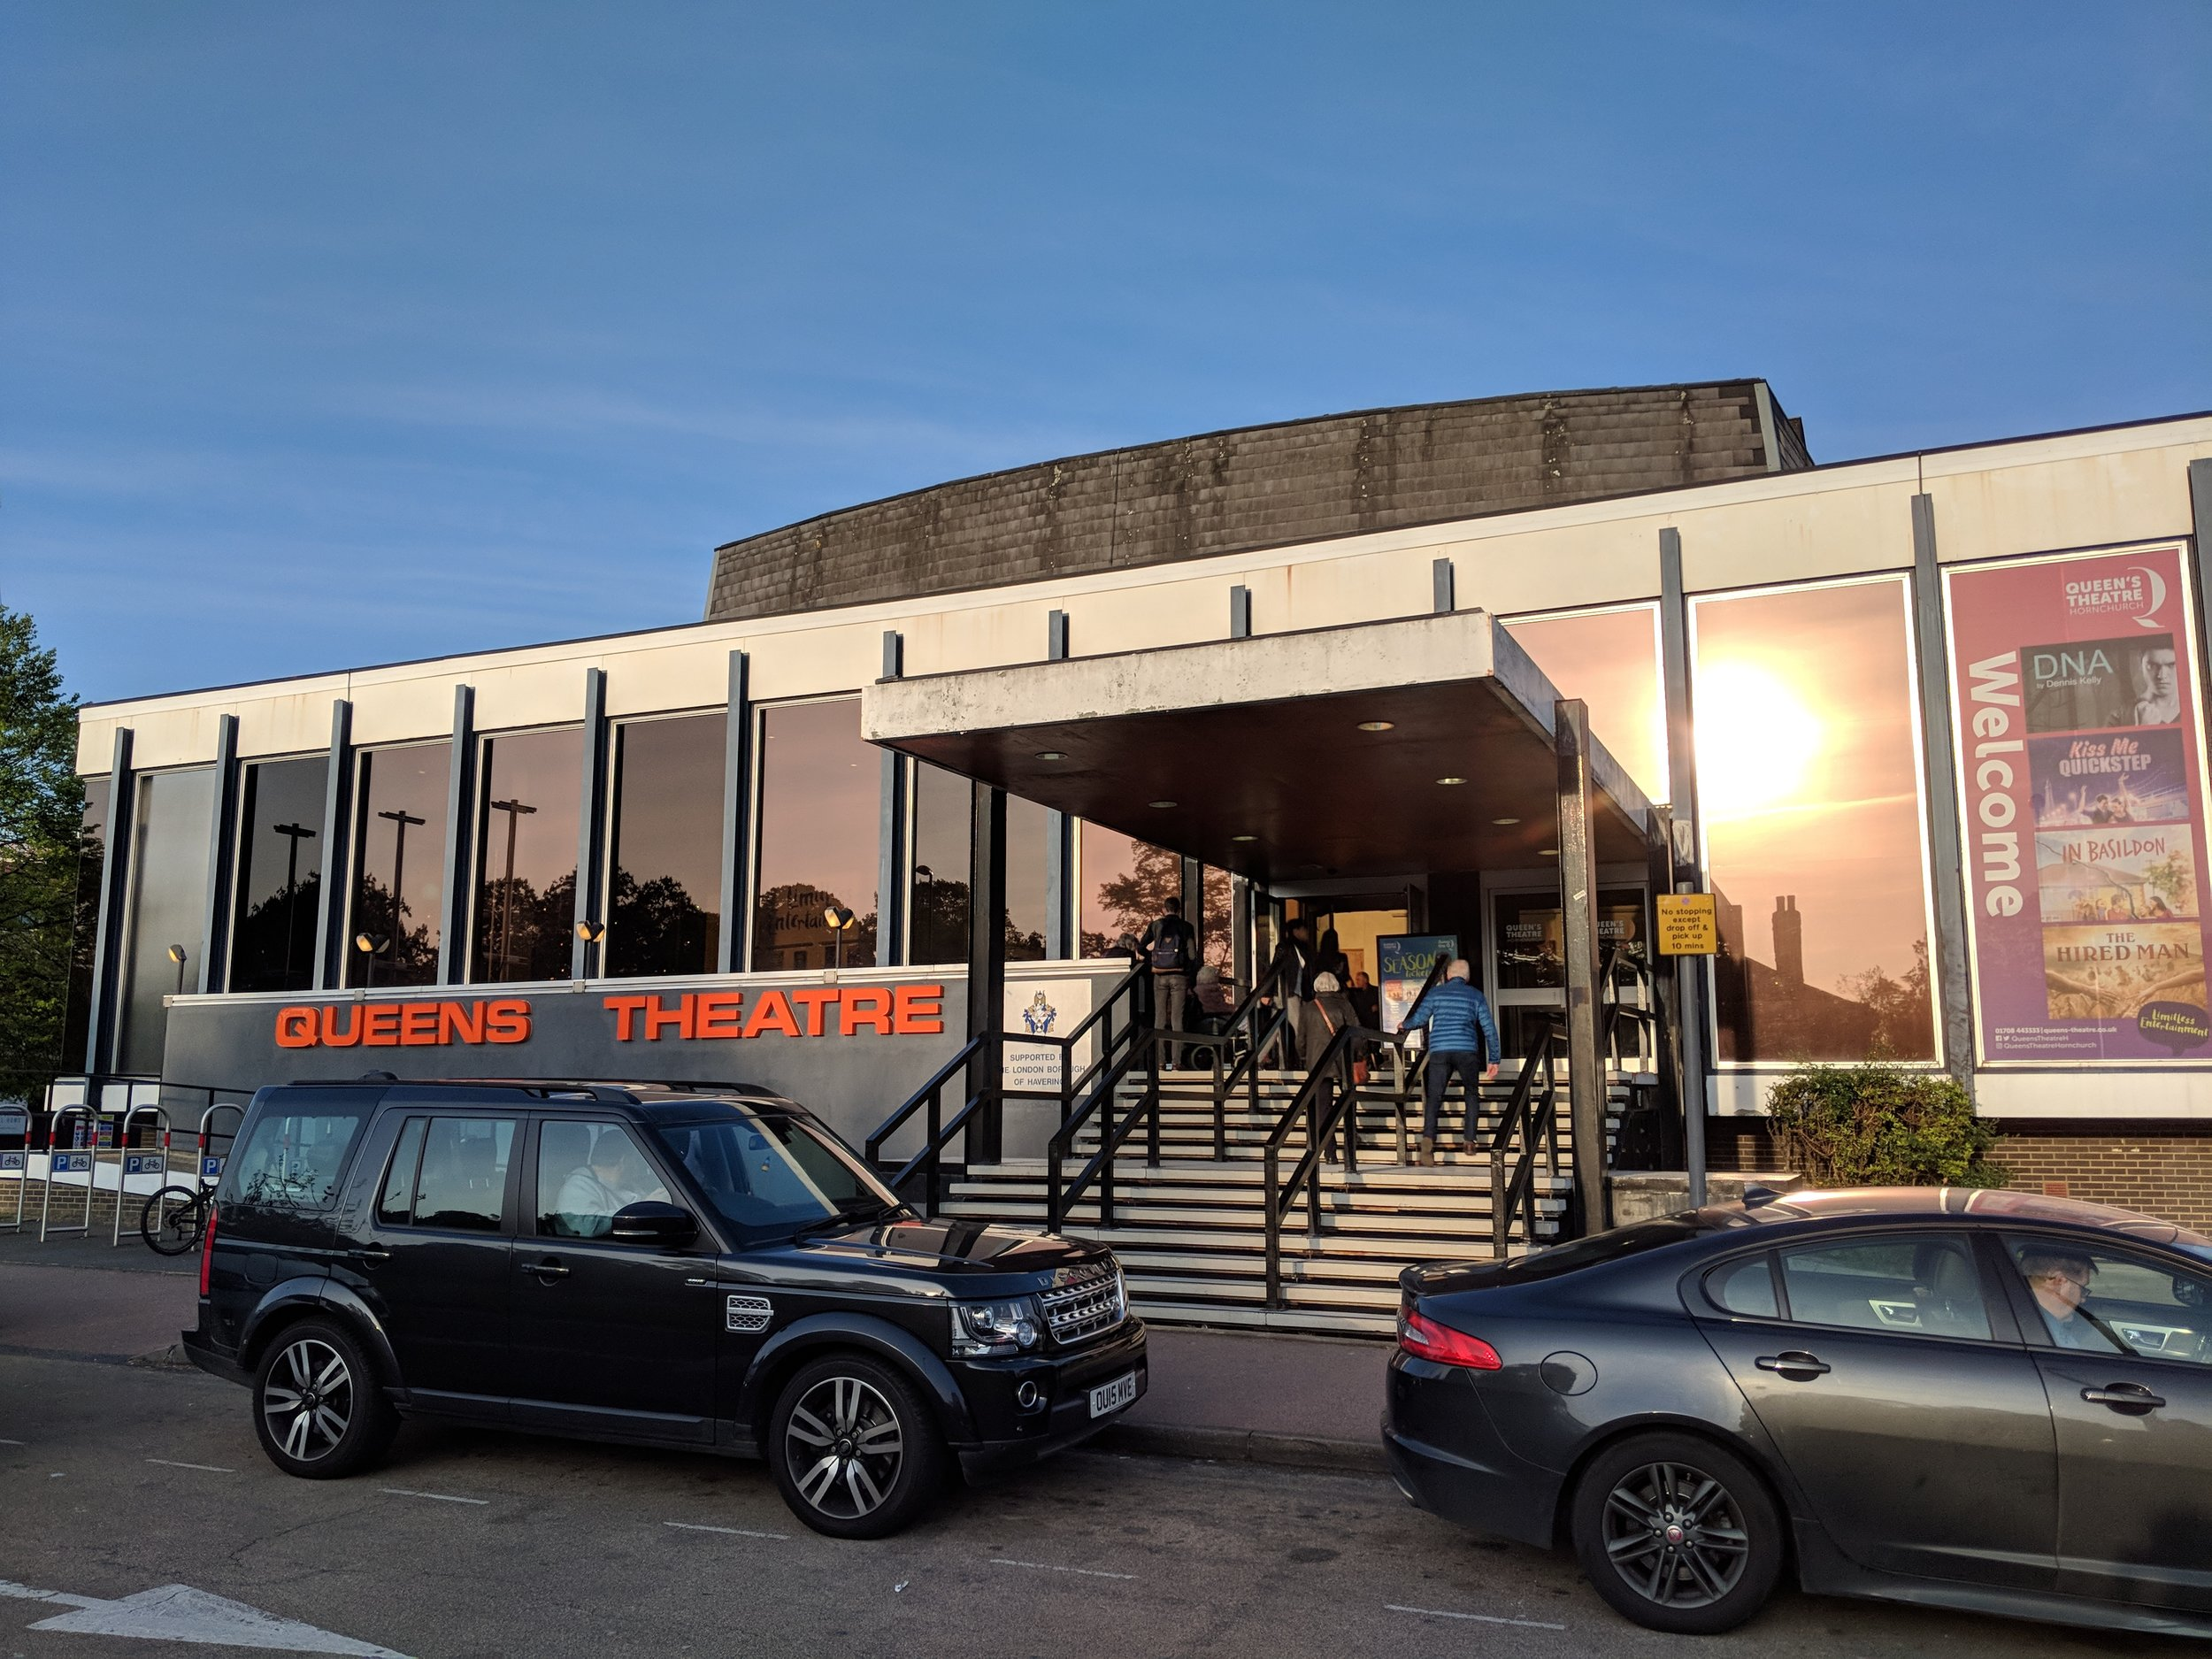 Queen's Theatre, Hornchurch - visited 30/04/2019